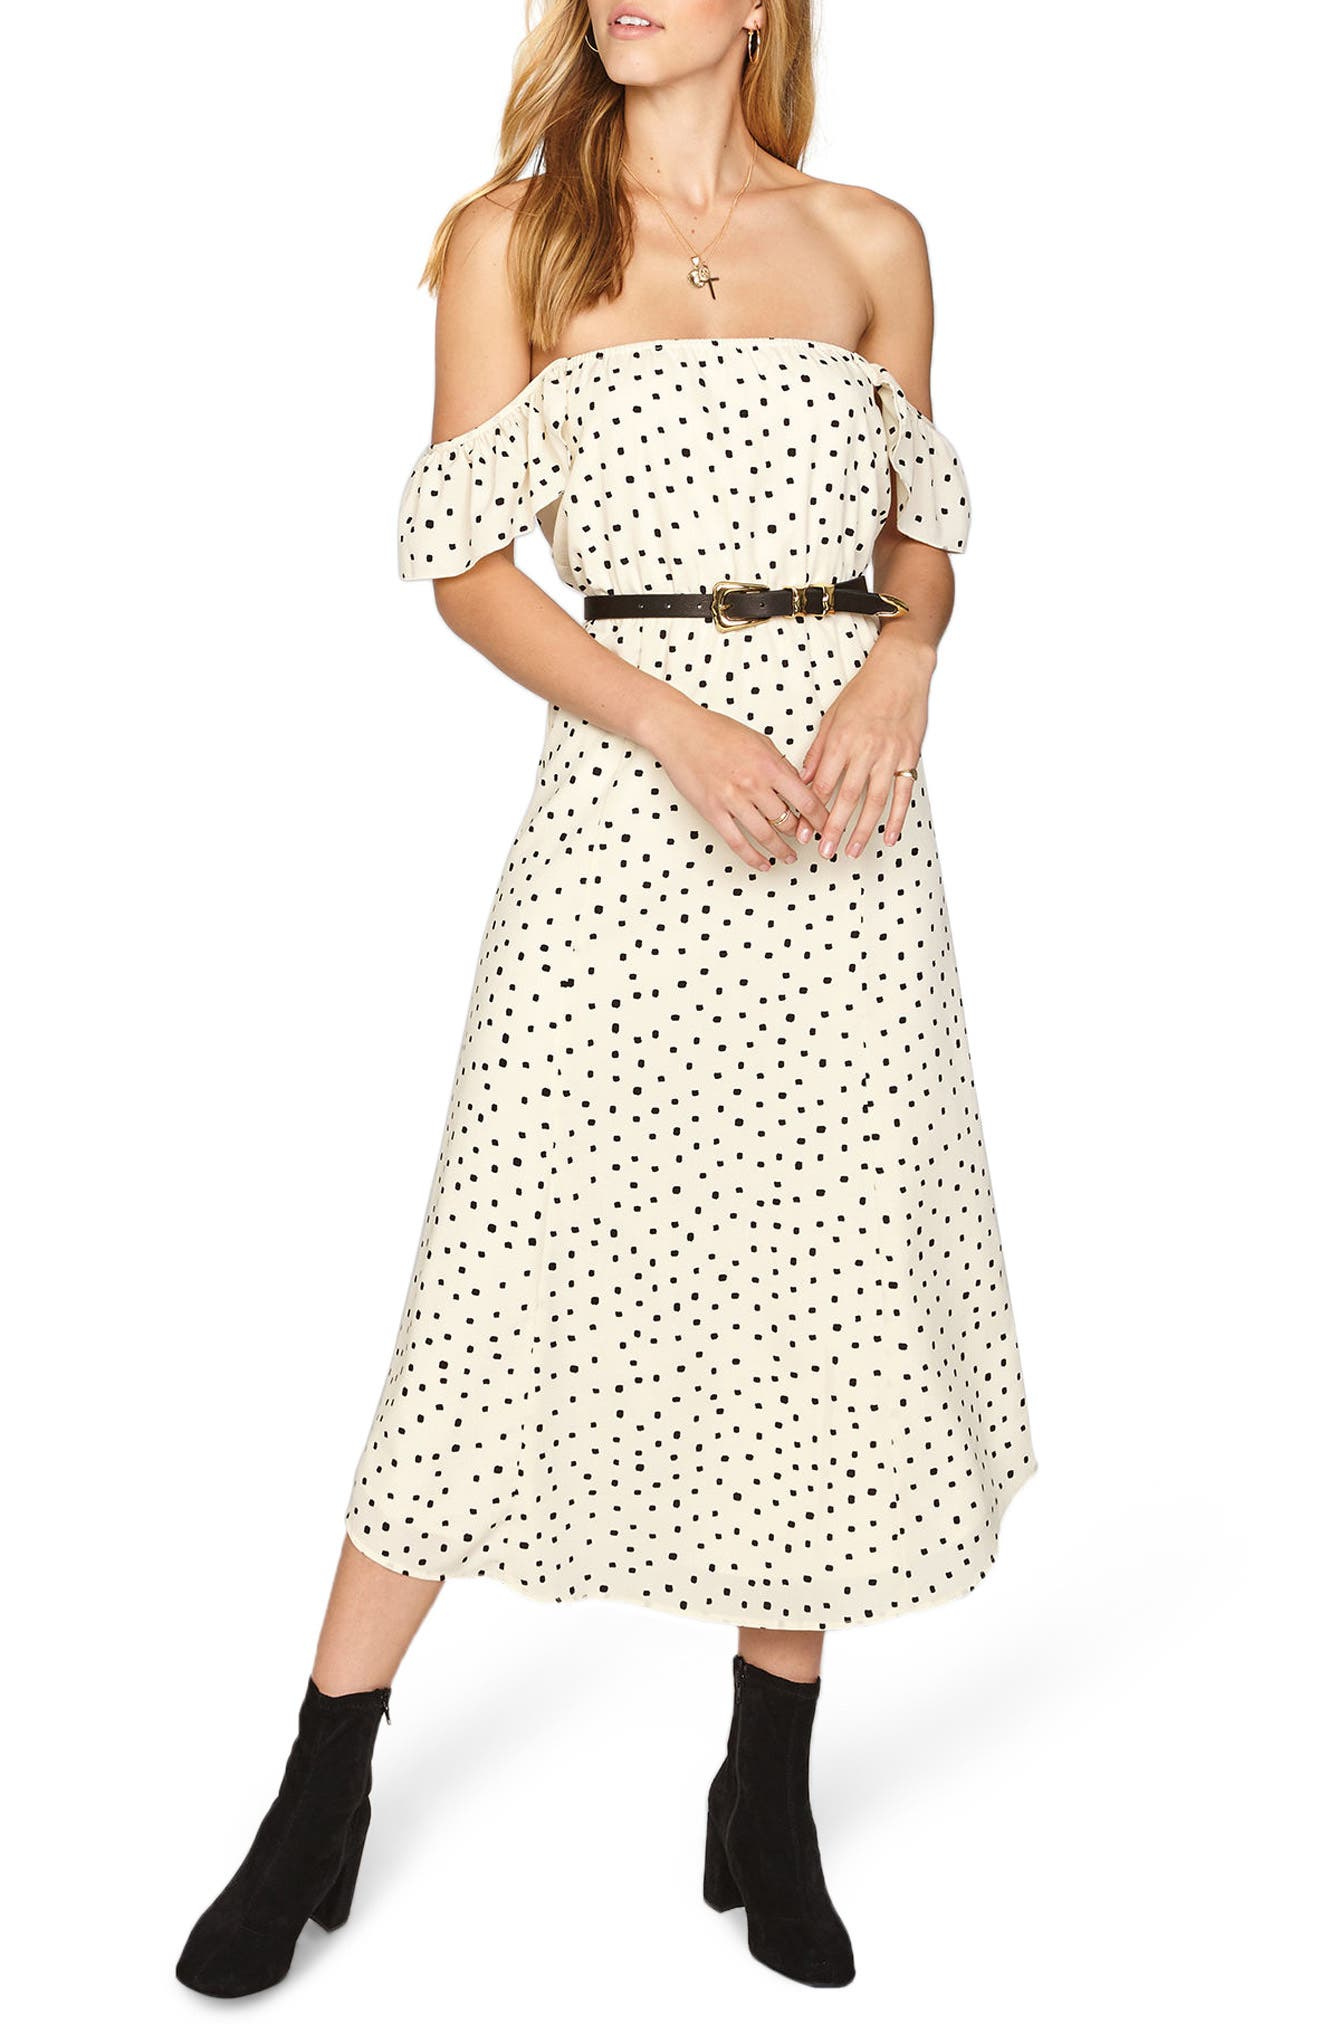 Alternate Image 1 Selected - Amuse Society Sweeter Than You Off the Shoulder Midi Dress